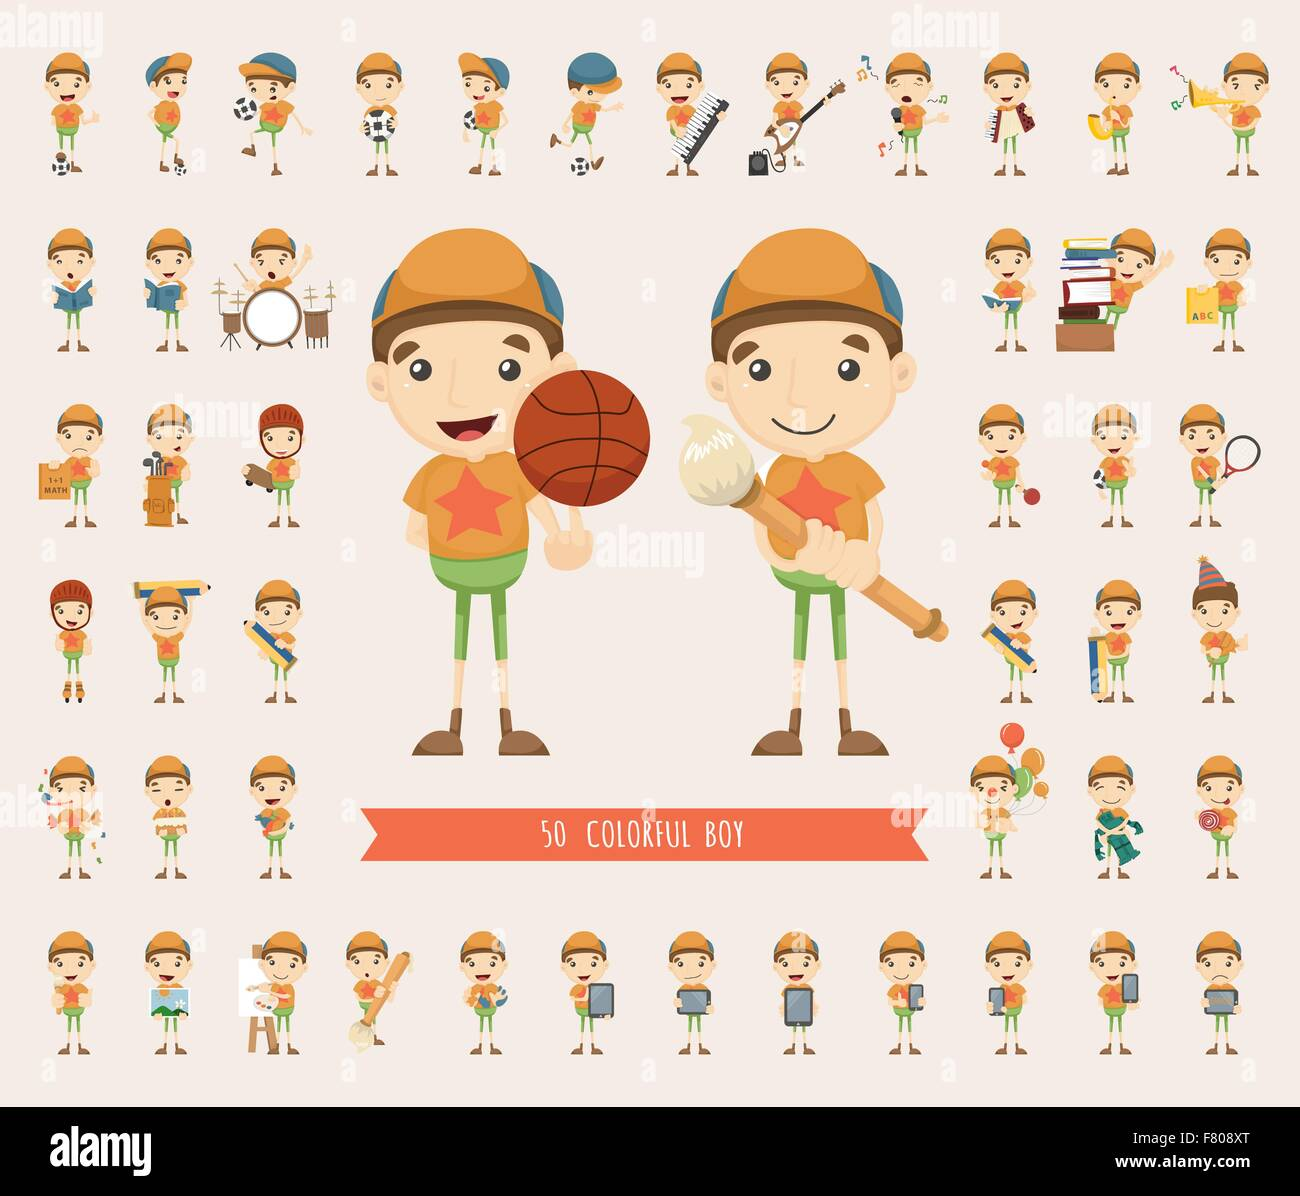 Set of boy character collection - Stock Image